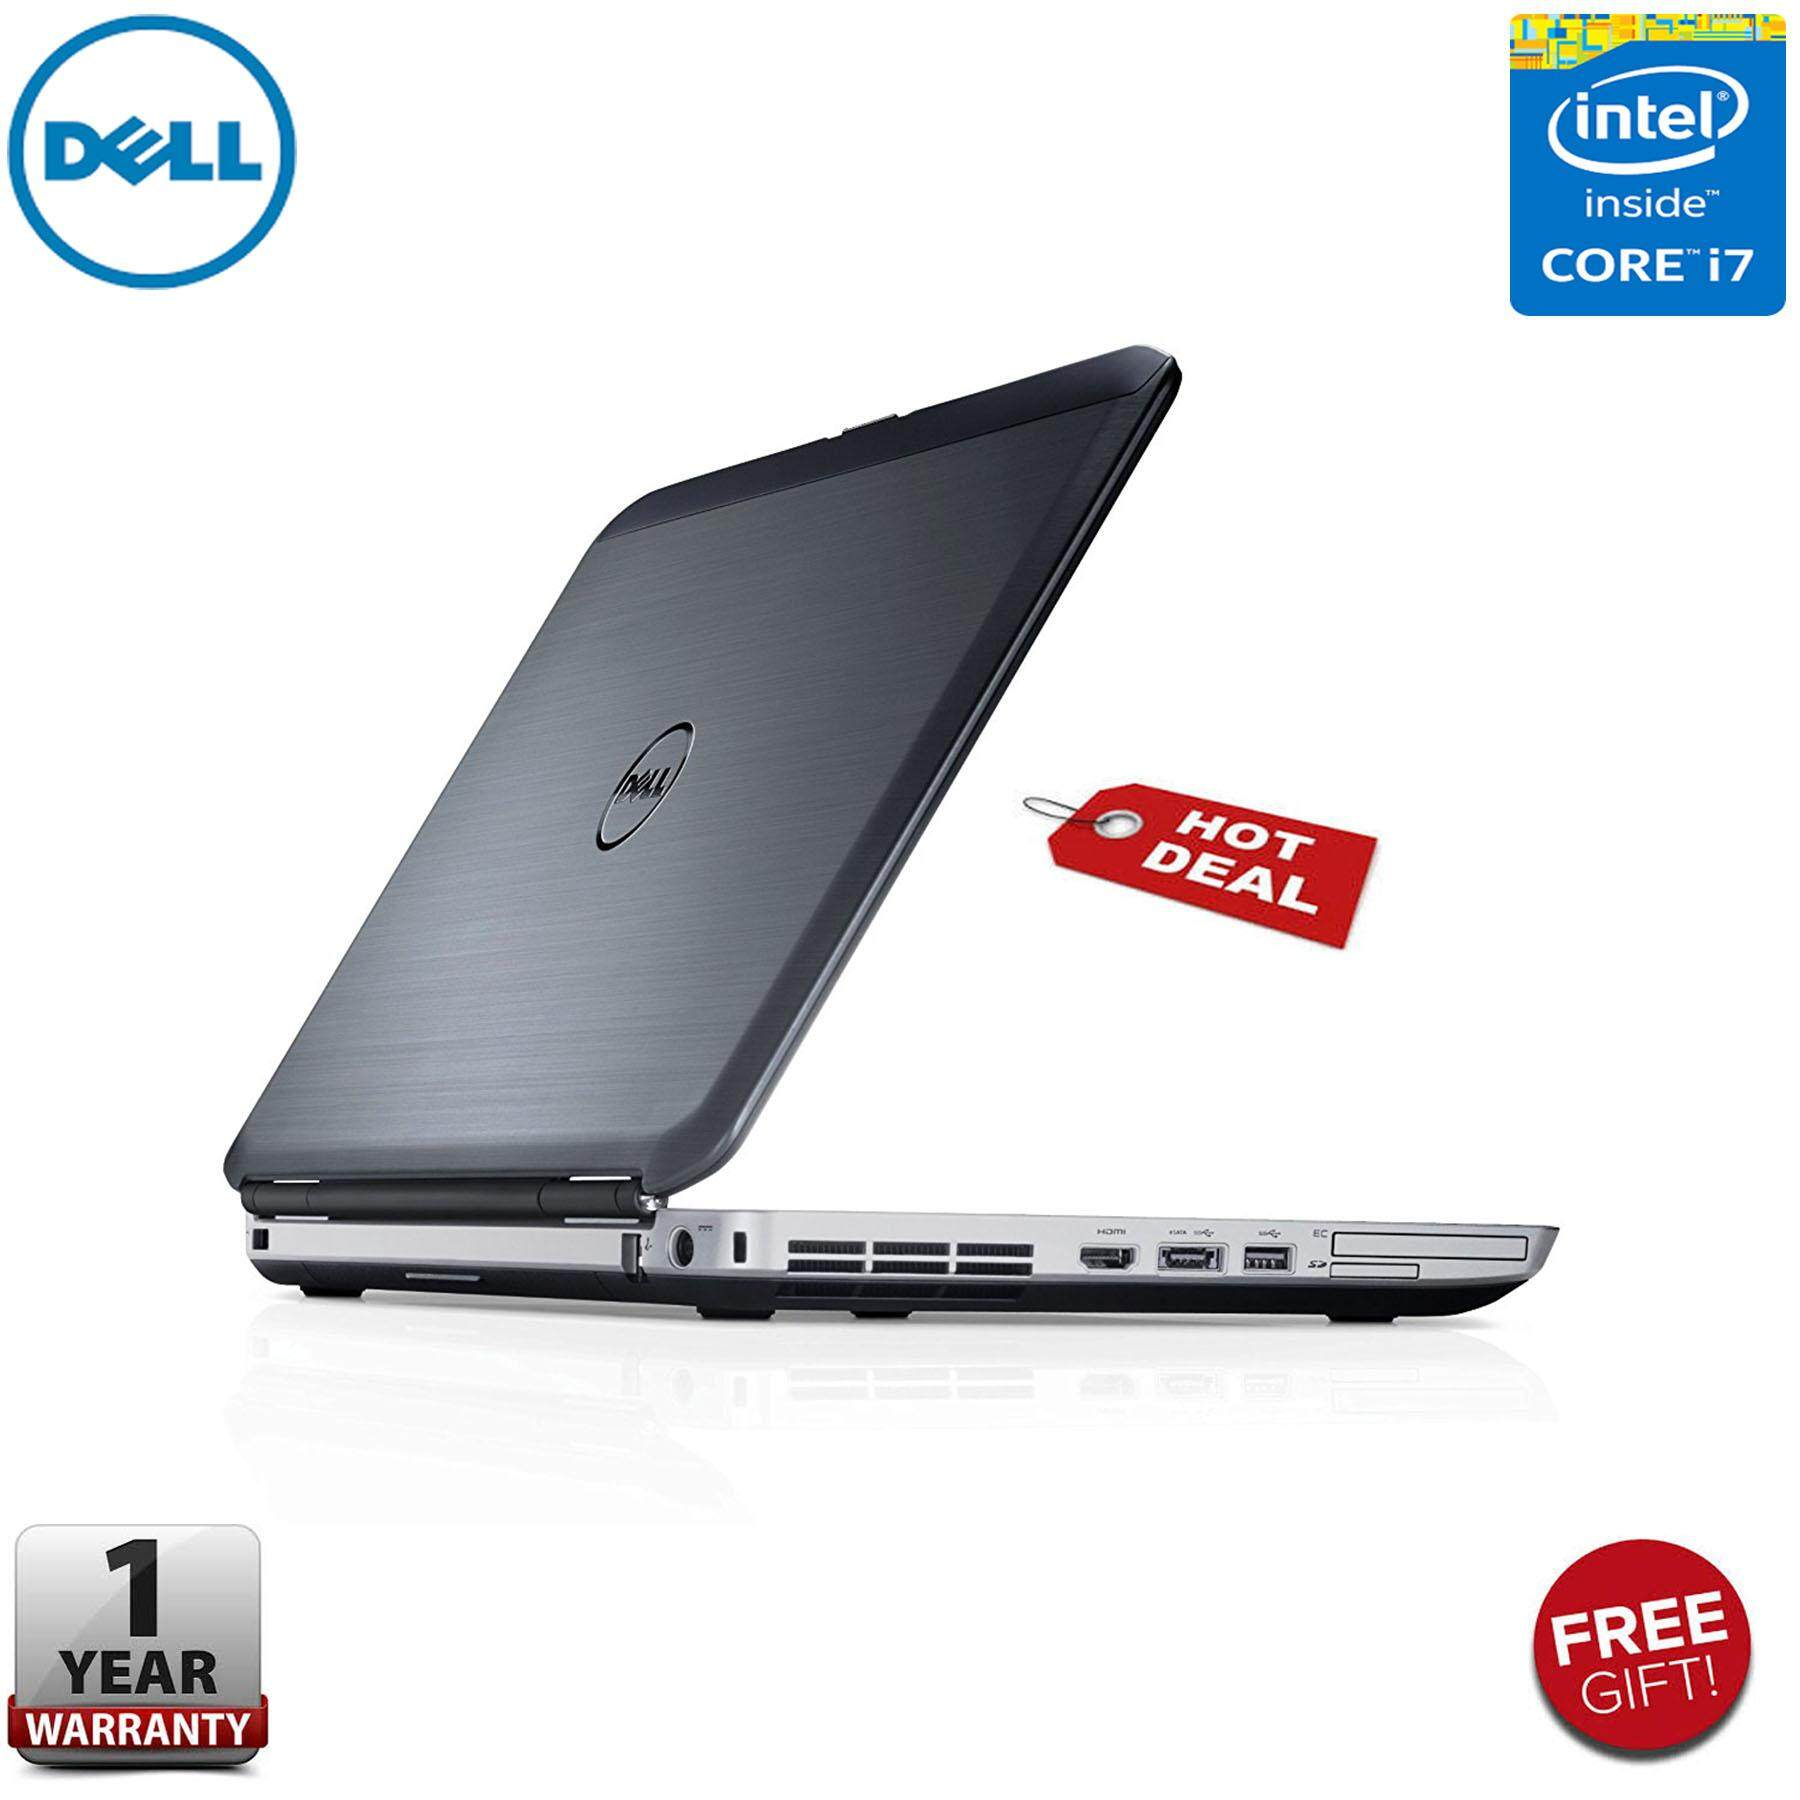 DELL LATITUDE E5430 SUPERDUTY [CORE i7 / 4GB RAM / 320GB HDD / 1 YEAR WARRANTY / FREE BAG] Malaysia